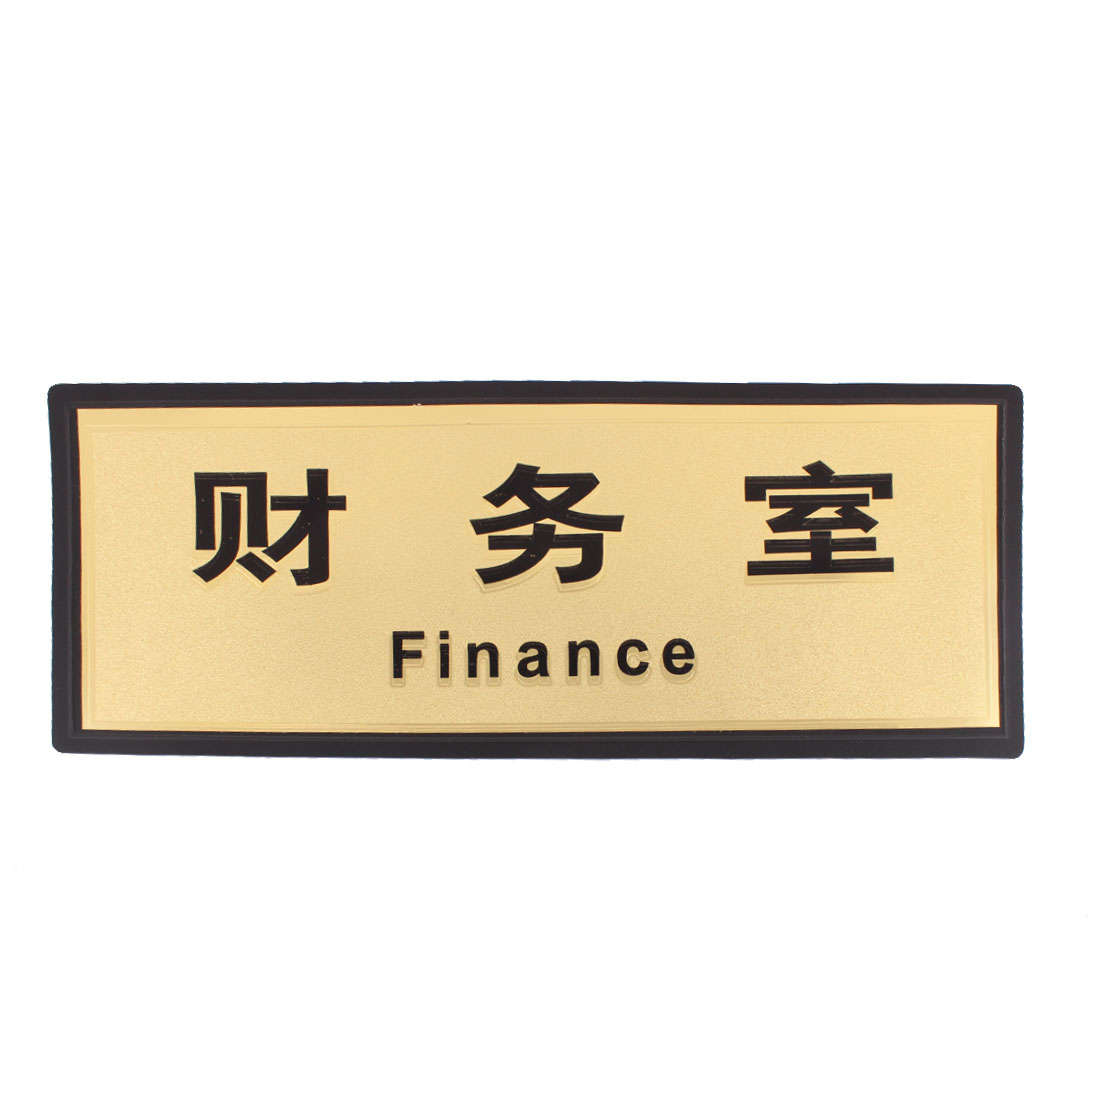 Finance Office Accounting Room Plastic Rectangle Bold Headlines Sticker Instruction Board